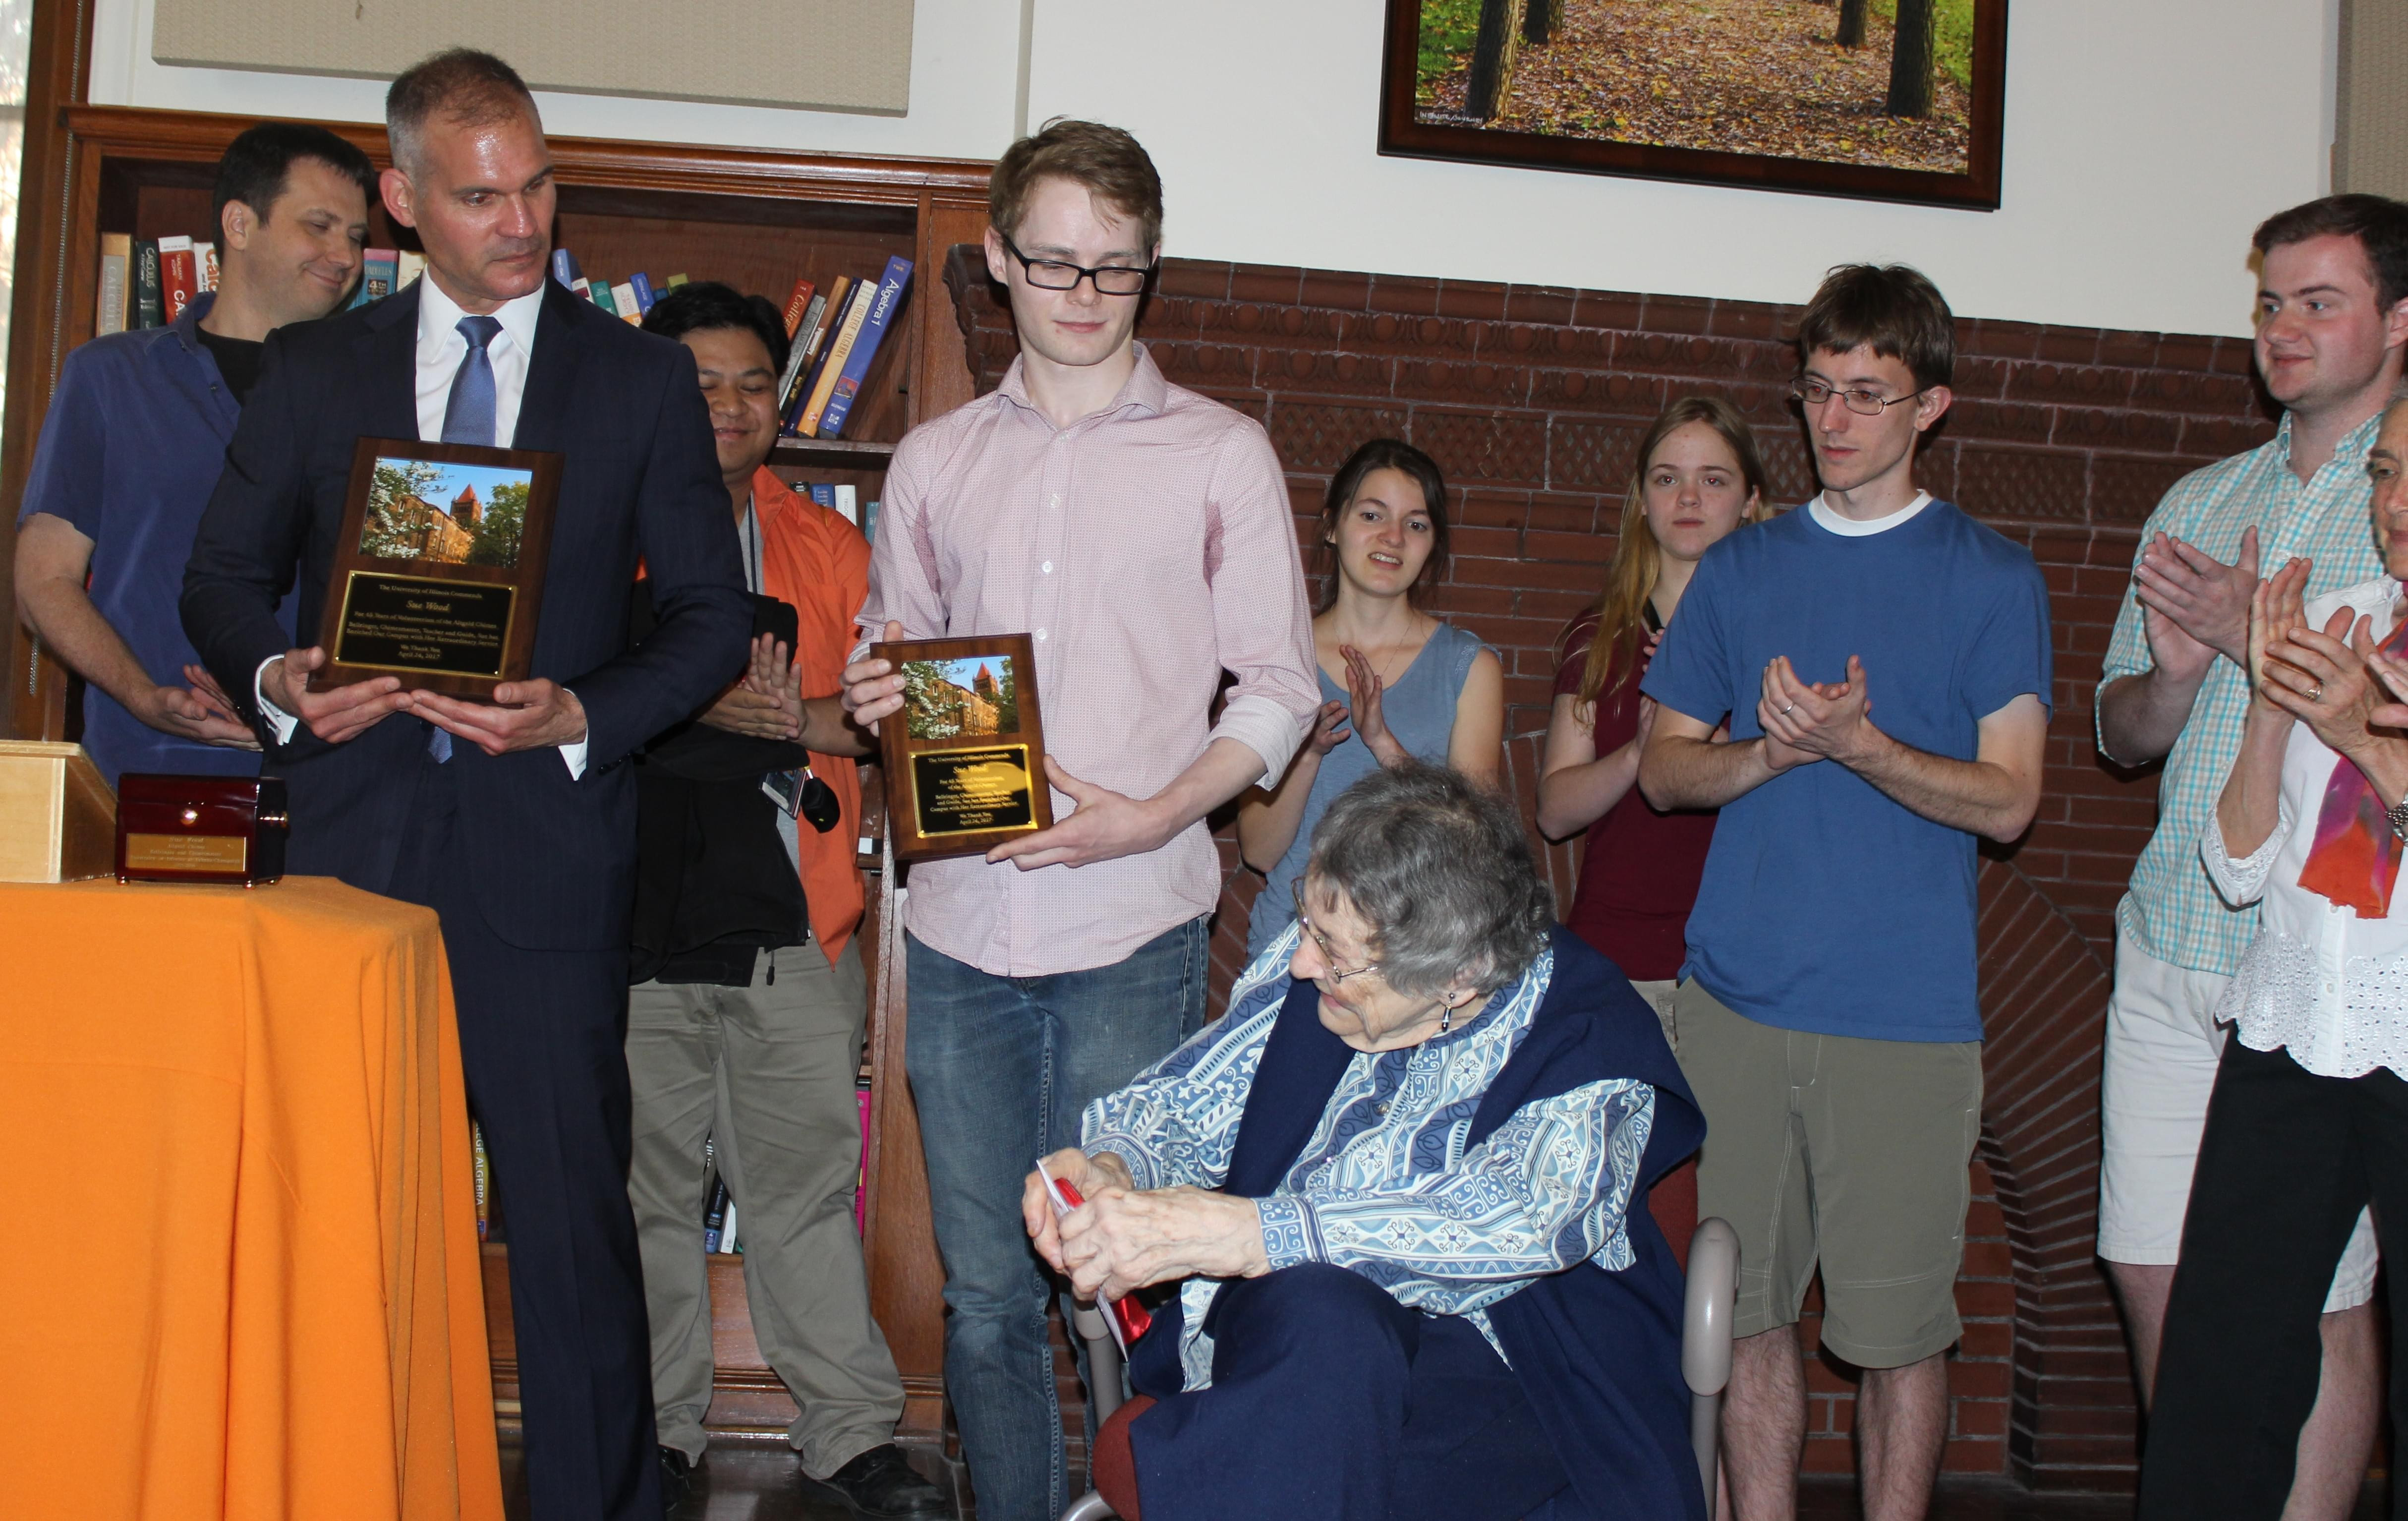 Sue Wood, center, is honored by volunteer chimes players and U of I Associate Provost Matthew Tomaszewski.